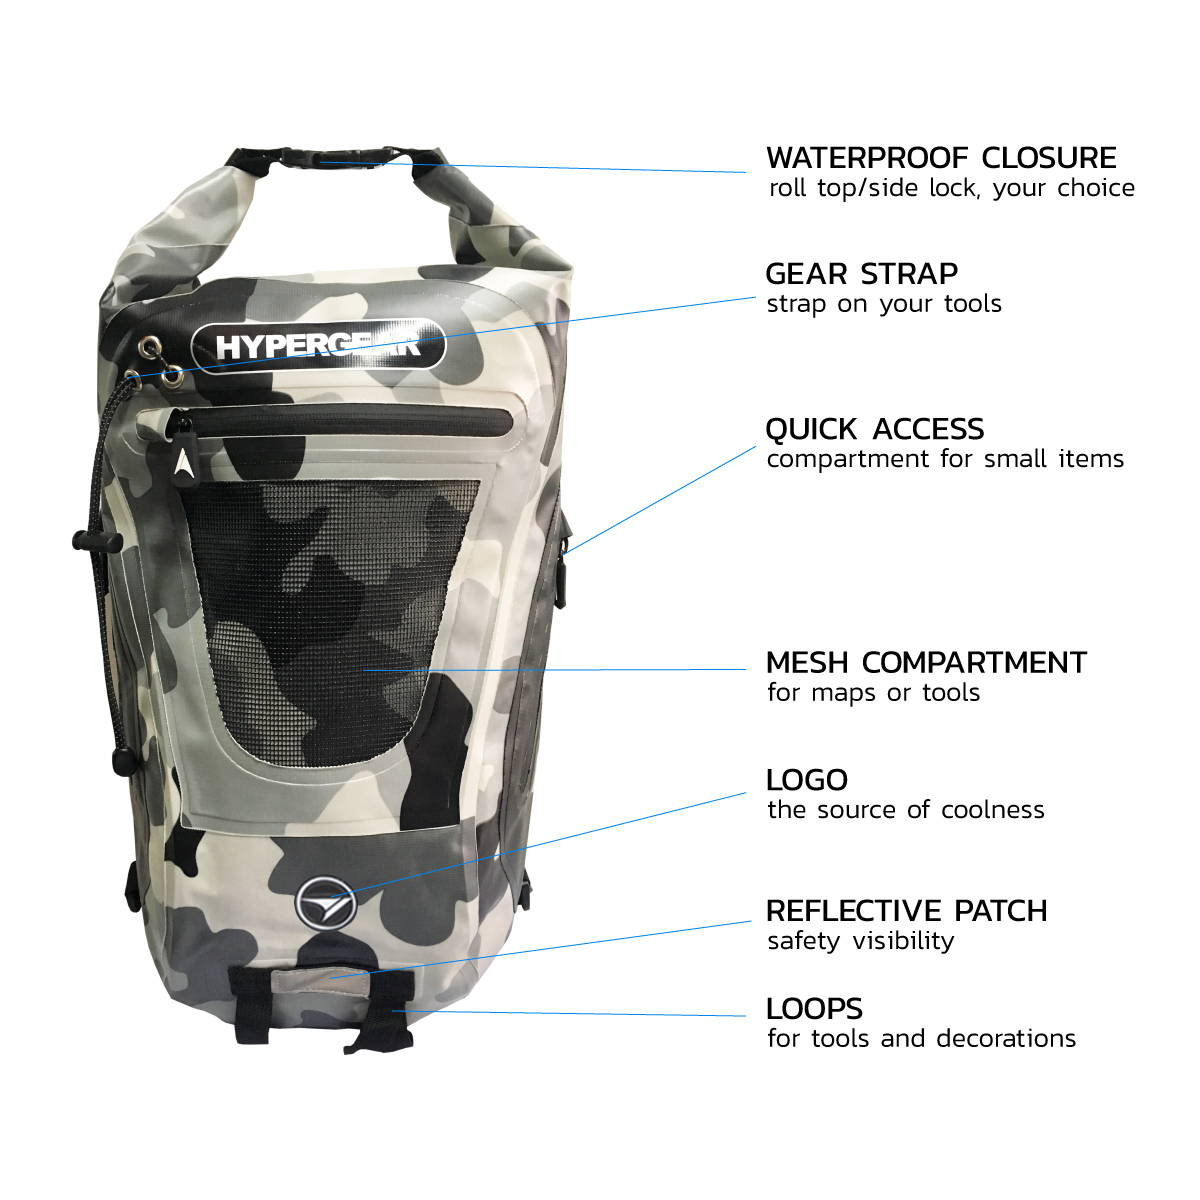 HYPERGEAR Dry Pac Tough 20L Bag, hiking, camping, outdoor, adventure, activity, 20L, spacious, compartment, lightweight